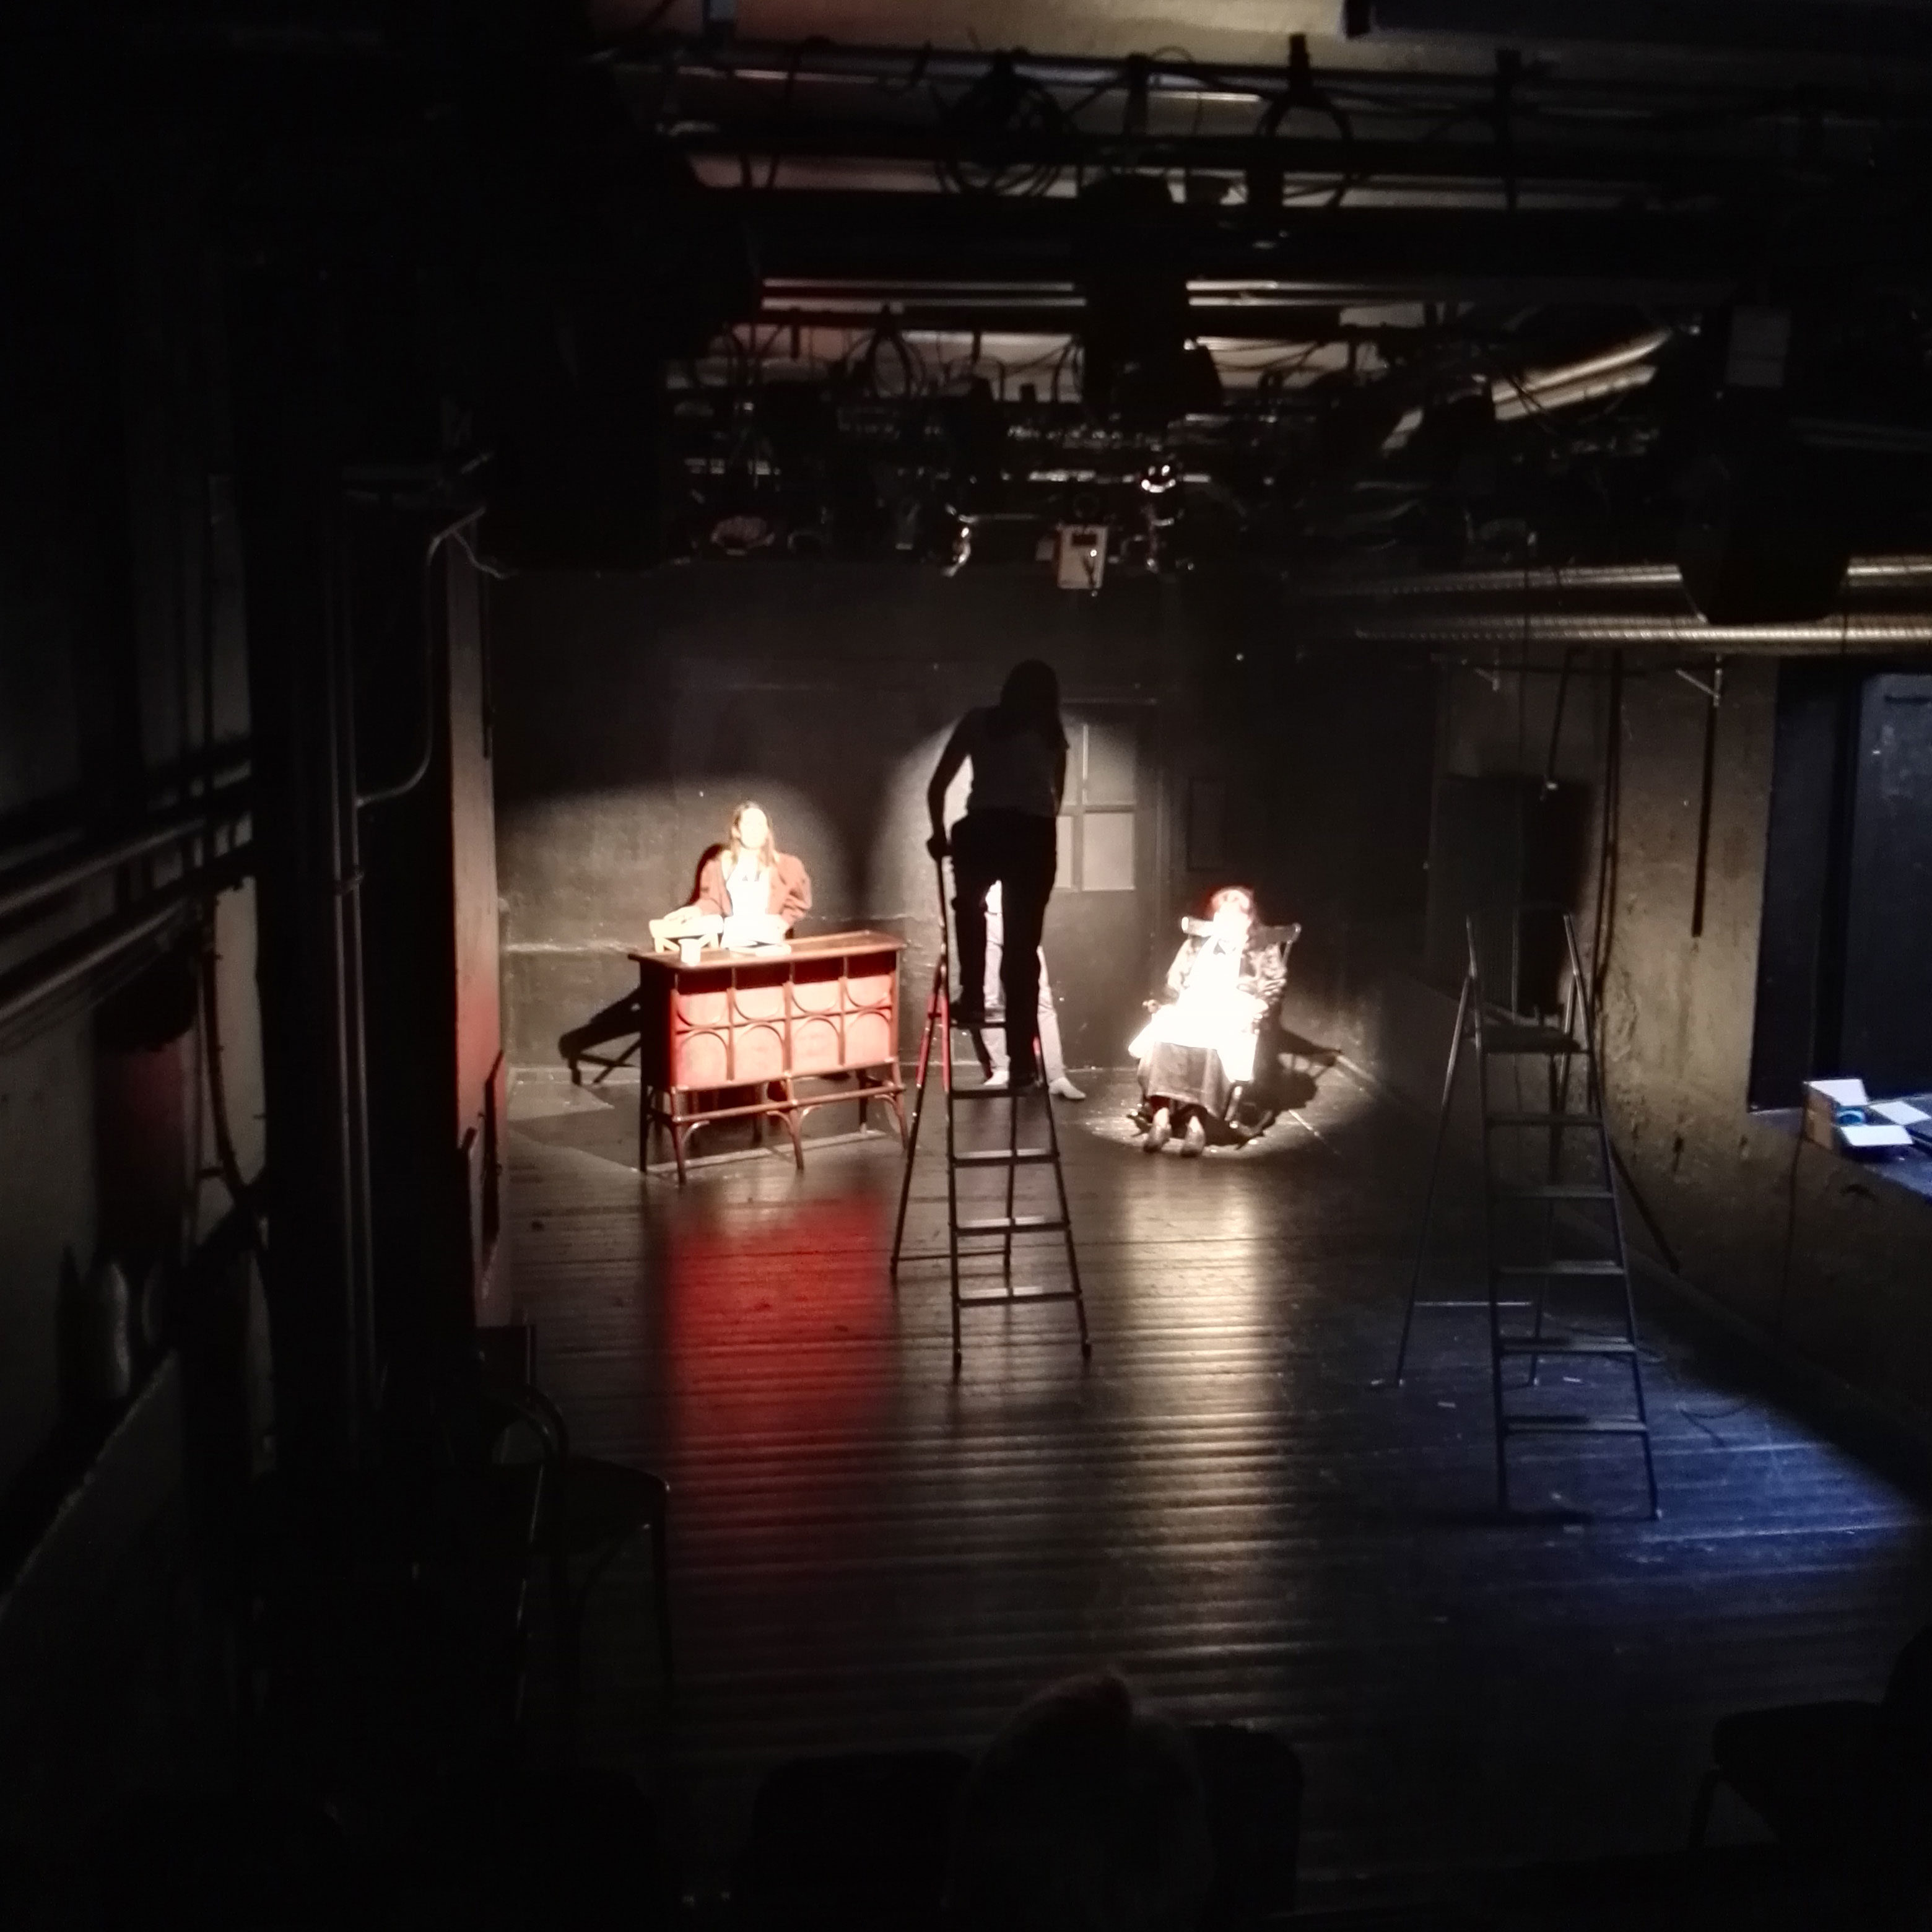 Directing lights 1st time